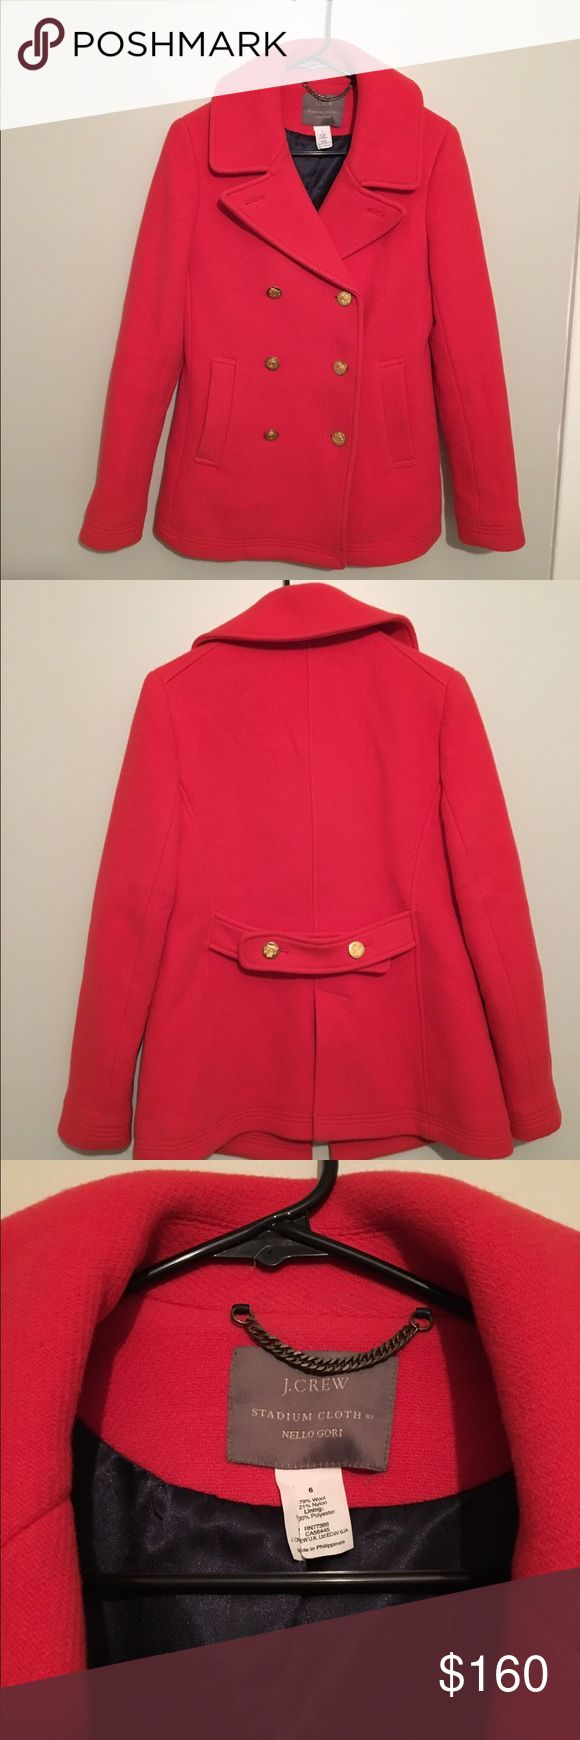 J.Crew Red Majesty Pea Coat This is an authentic J.Crew Majesty Red pea coat that I got last Christmas and have only worn once! It's in brand new condition and is a very pretty Lipstick Red. I got it for $298 so I'm letting it go for a steal. It is a size 6 and has a great arm length. J. Crew Jackets & Coats Pea Coats